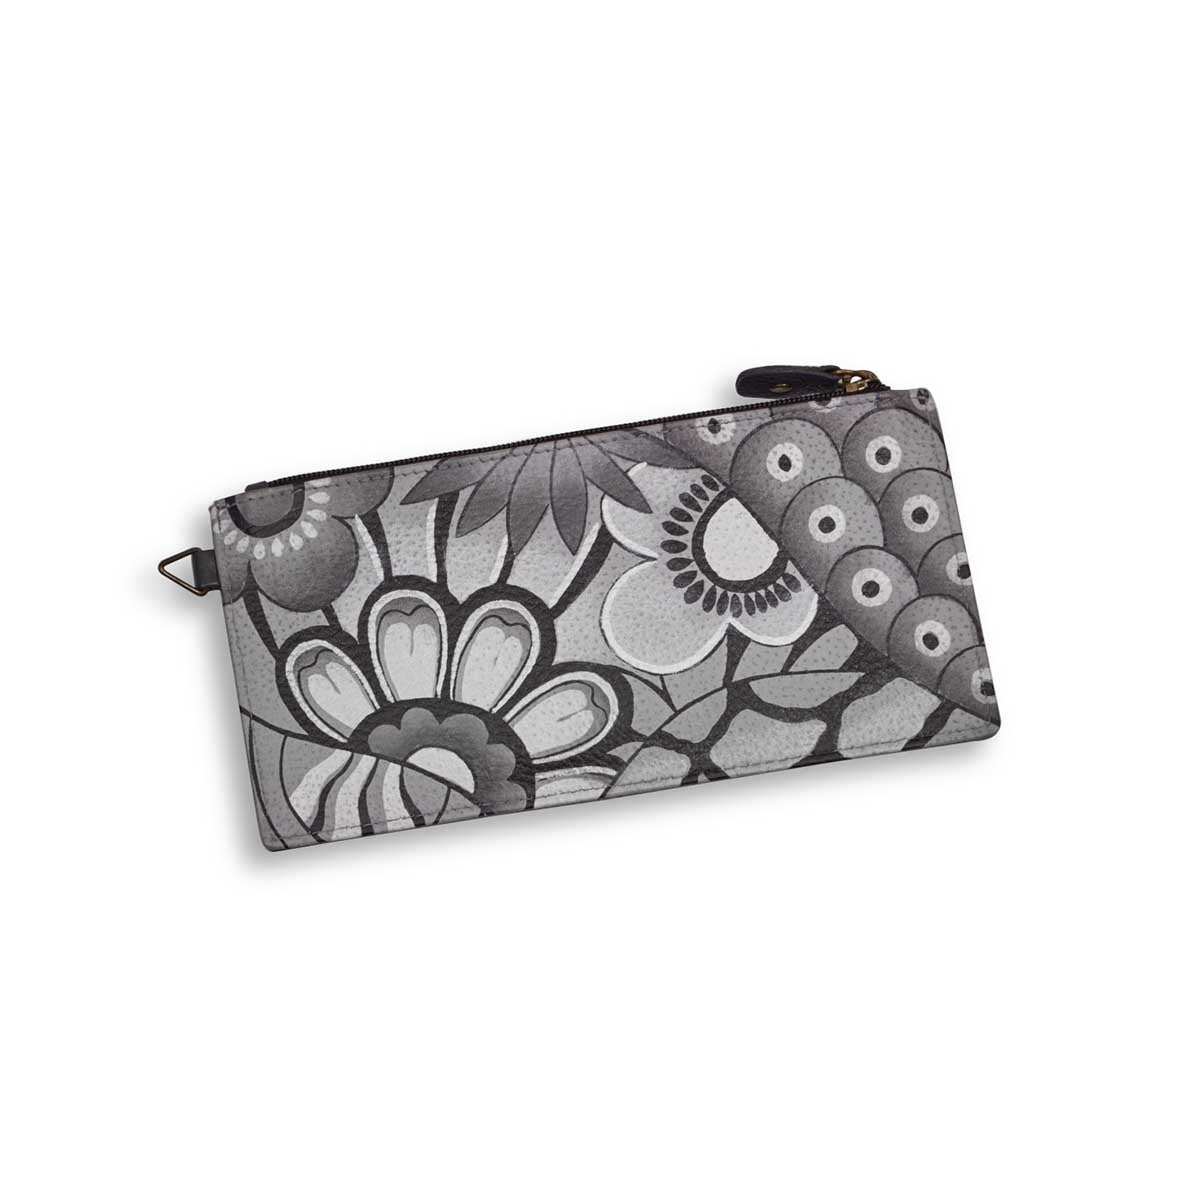 Painted lthr Patchwork Pewter wallet